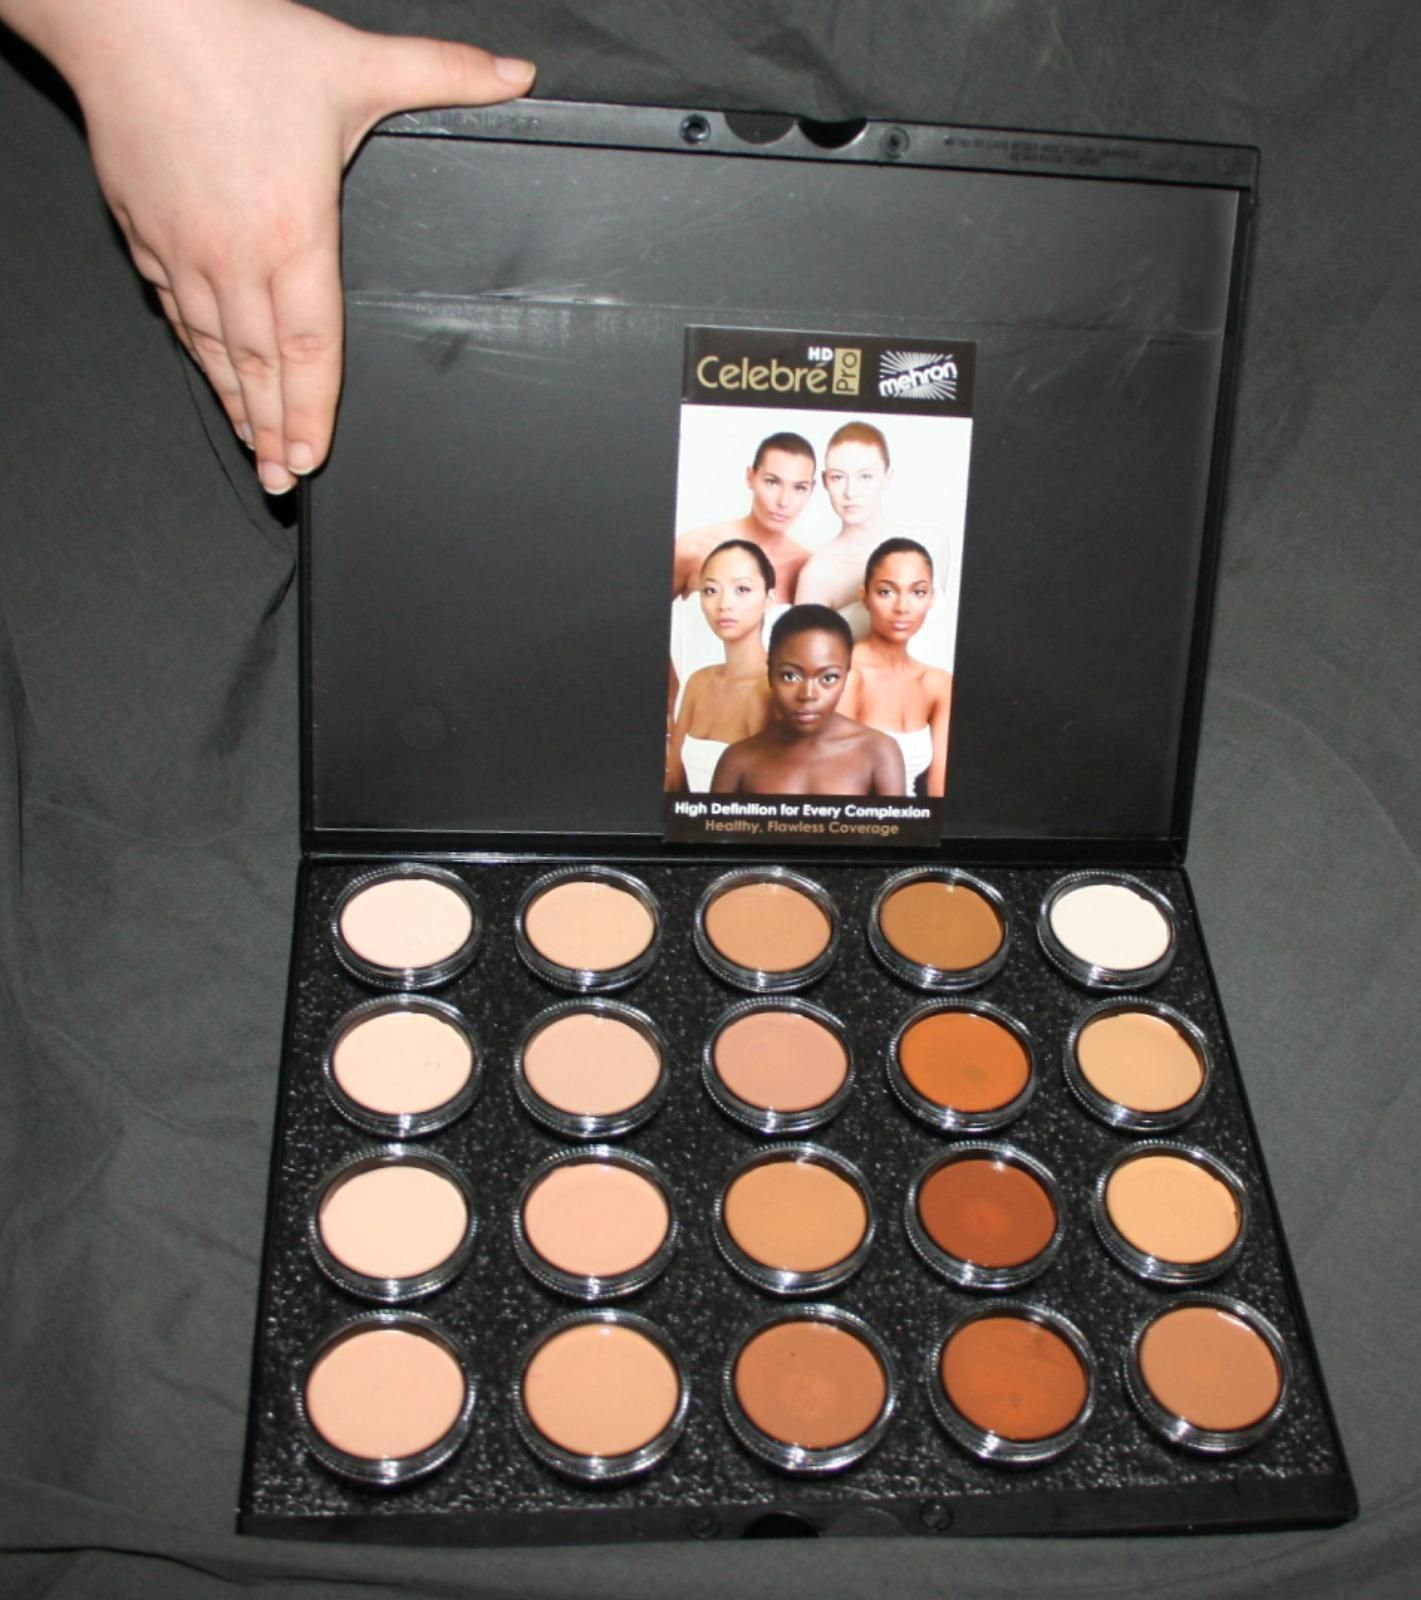 20 Color Palette Celebre HD Pro Artist Makeup Mehron face